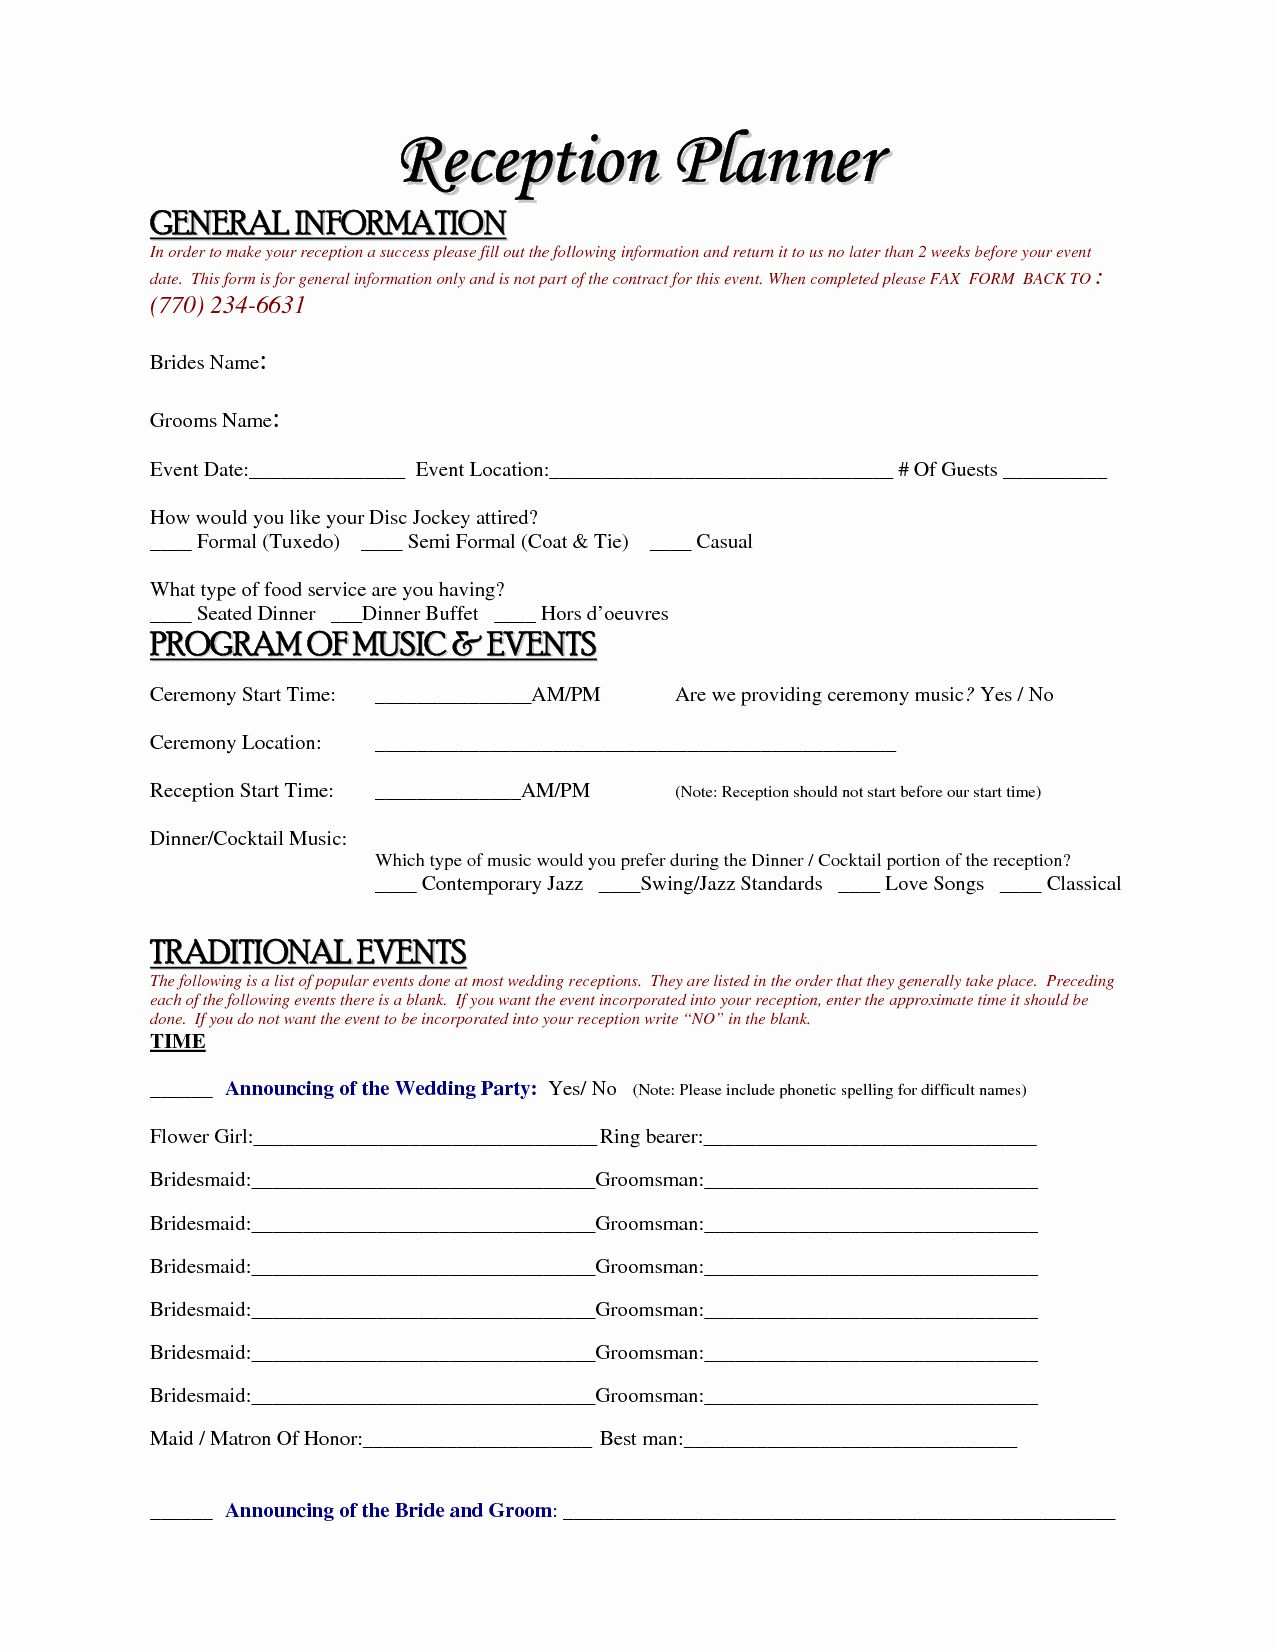 Wedding Flowers Order Form Template Best Of Pin By Yesidomariage On La Voiture Des Mari Event Planning Template Event Planning Contract Wedding Planning Binder Wedding planner contract template free